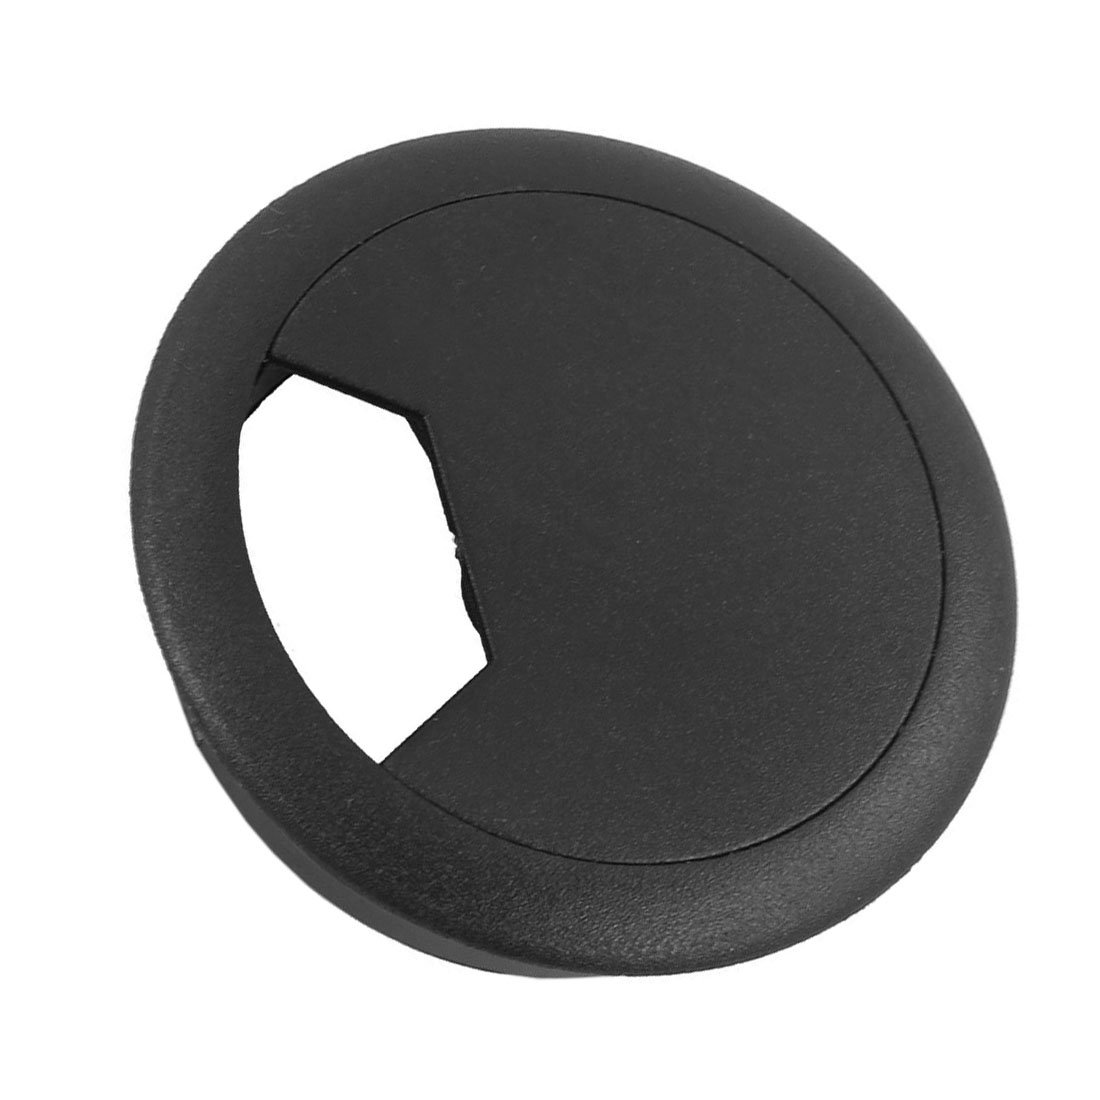 SODIAL(R) Hole Cover 2 Pcs 50mm Diameter Desk Wire Cord Cable Grommets Hole Cover Black by SODIAL(R) (Image #2)